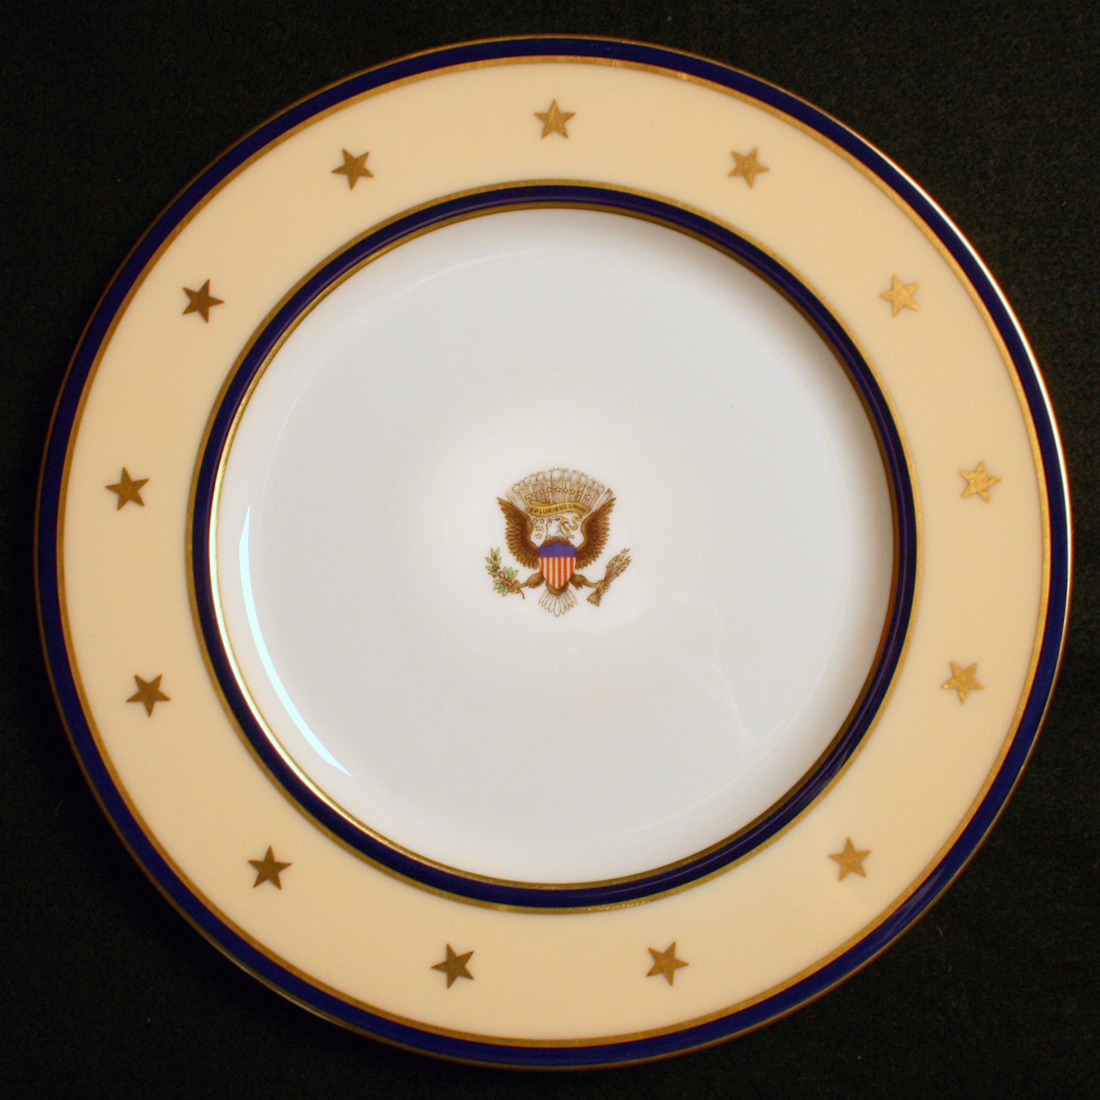 fdr_wiliamsburg_service_close-up_franklin-roosevelt-china-uss-williamsburg-plate-WHITE HOUSE CHINA